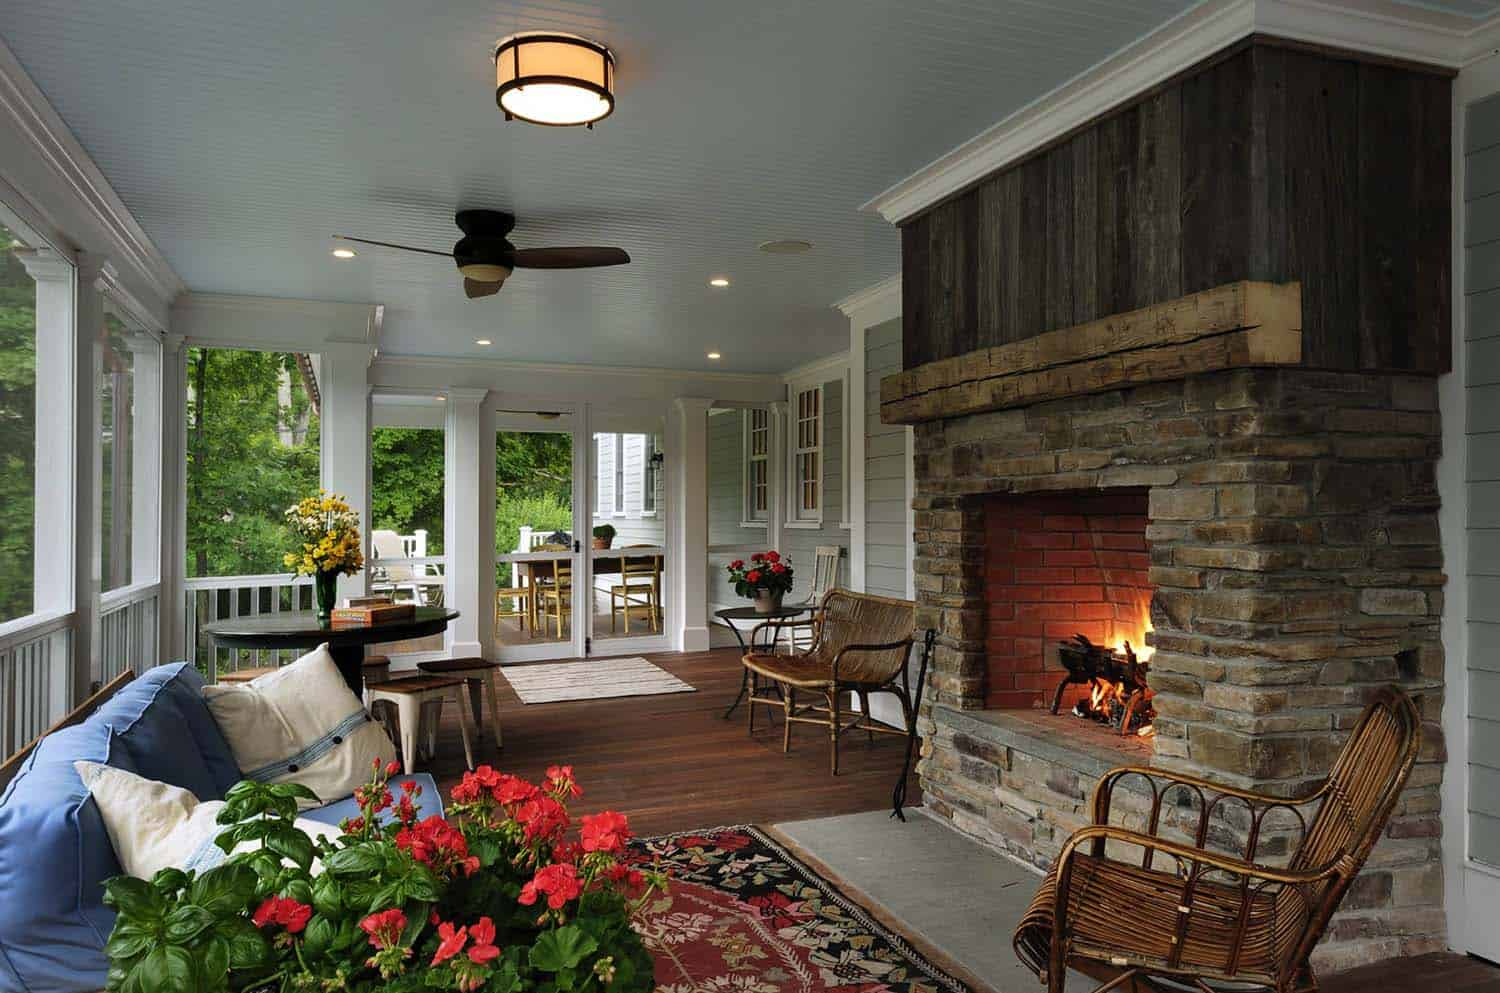 38 amazingly cozy and relaxing screened porch design ideas 38 amazingly cozy and relaxing screened porch design ideas - Screen Porch Design Ideas